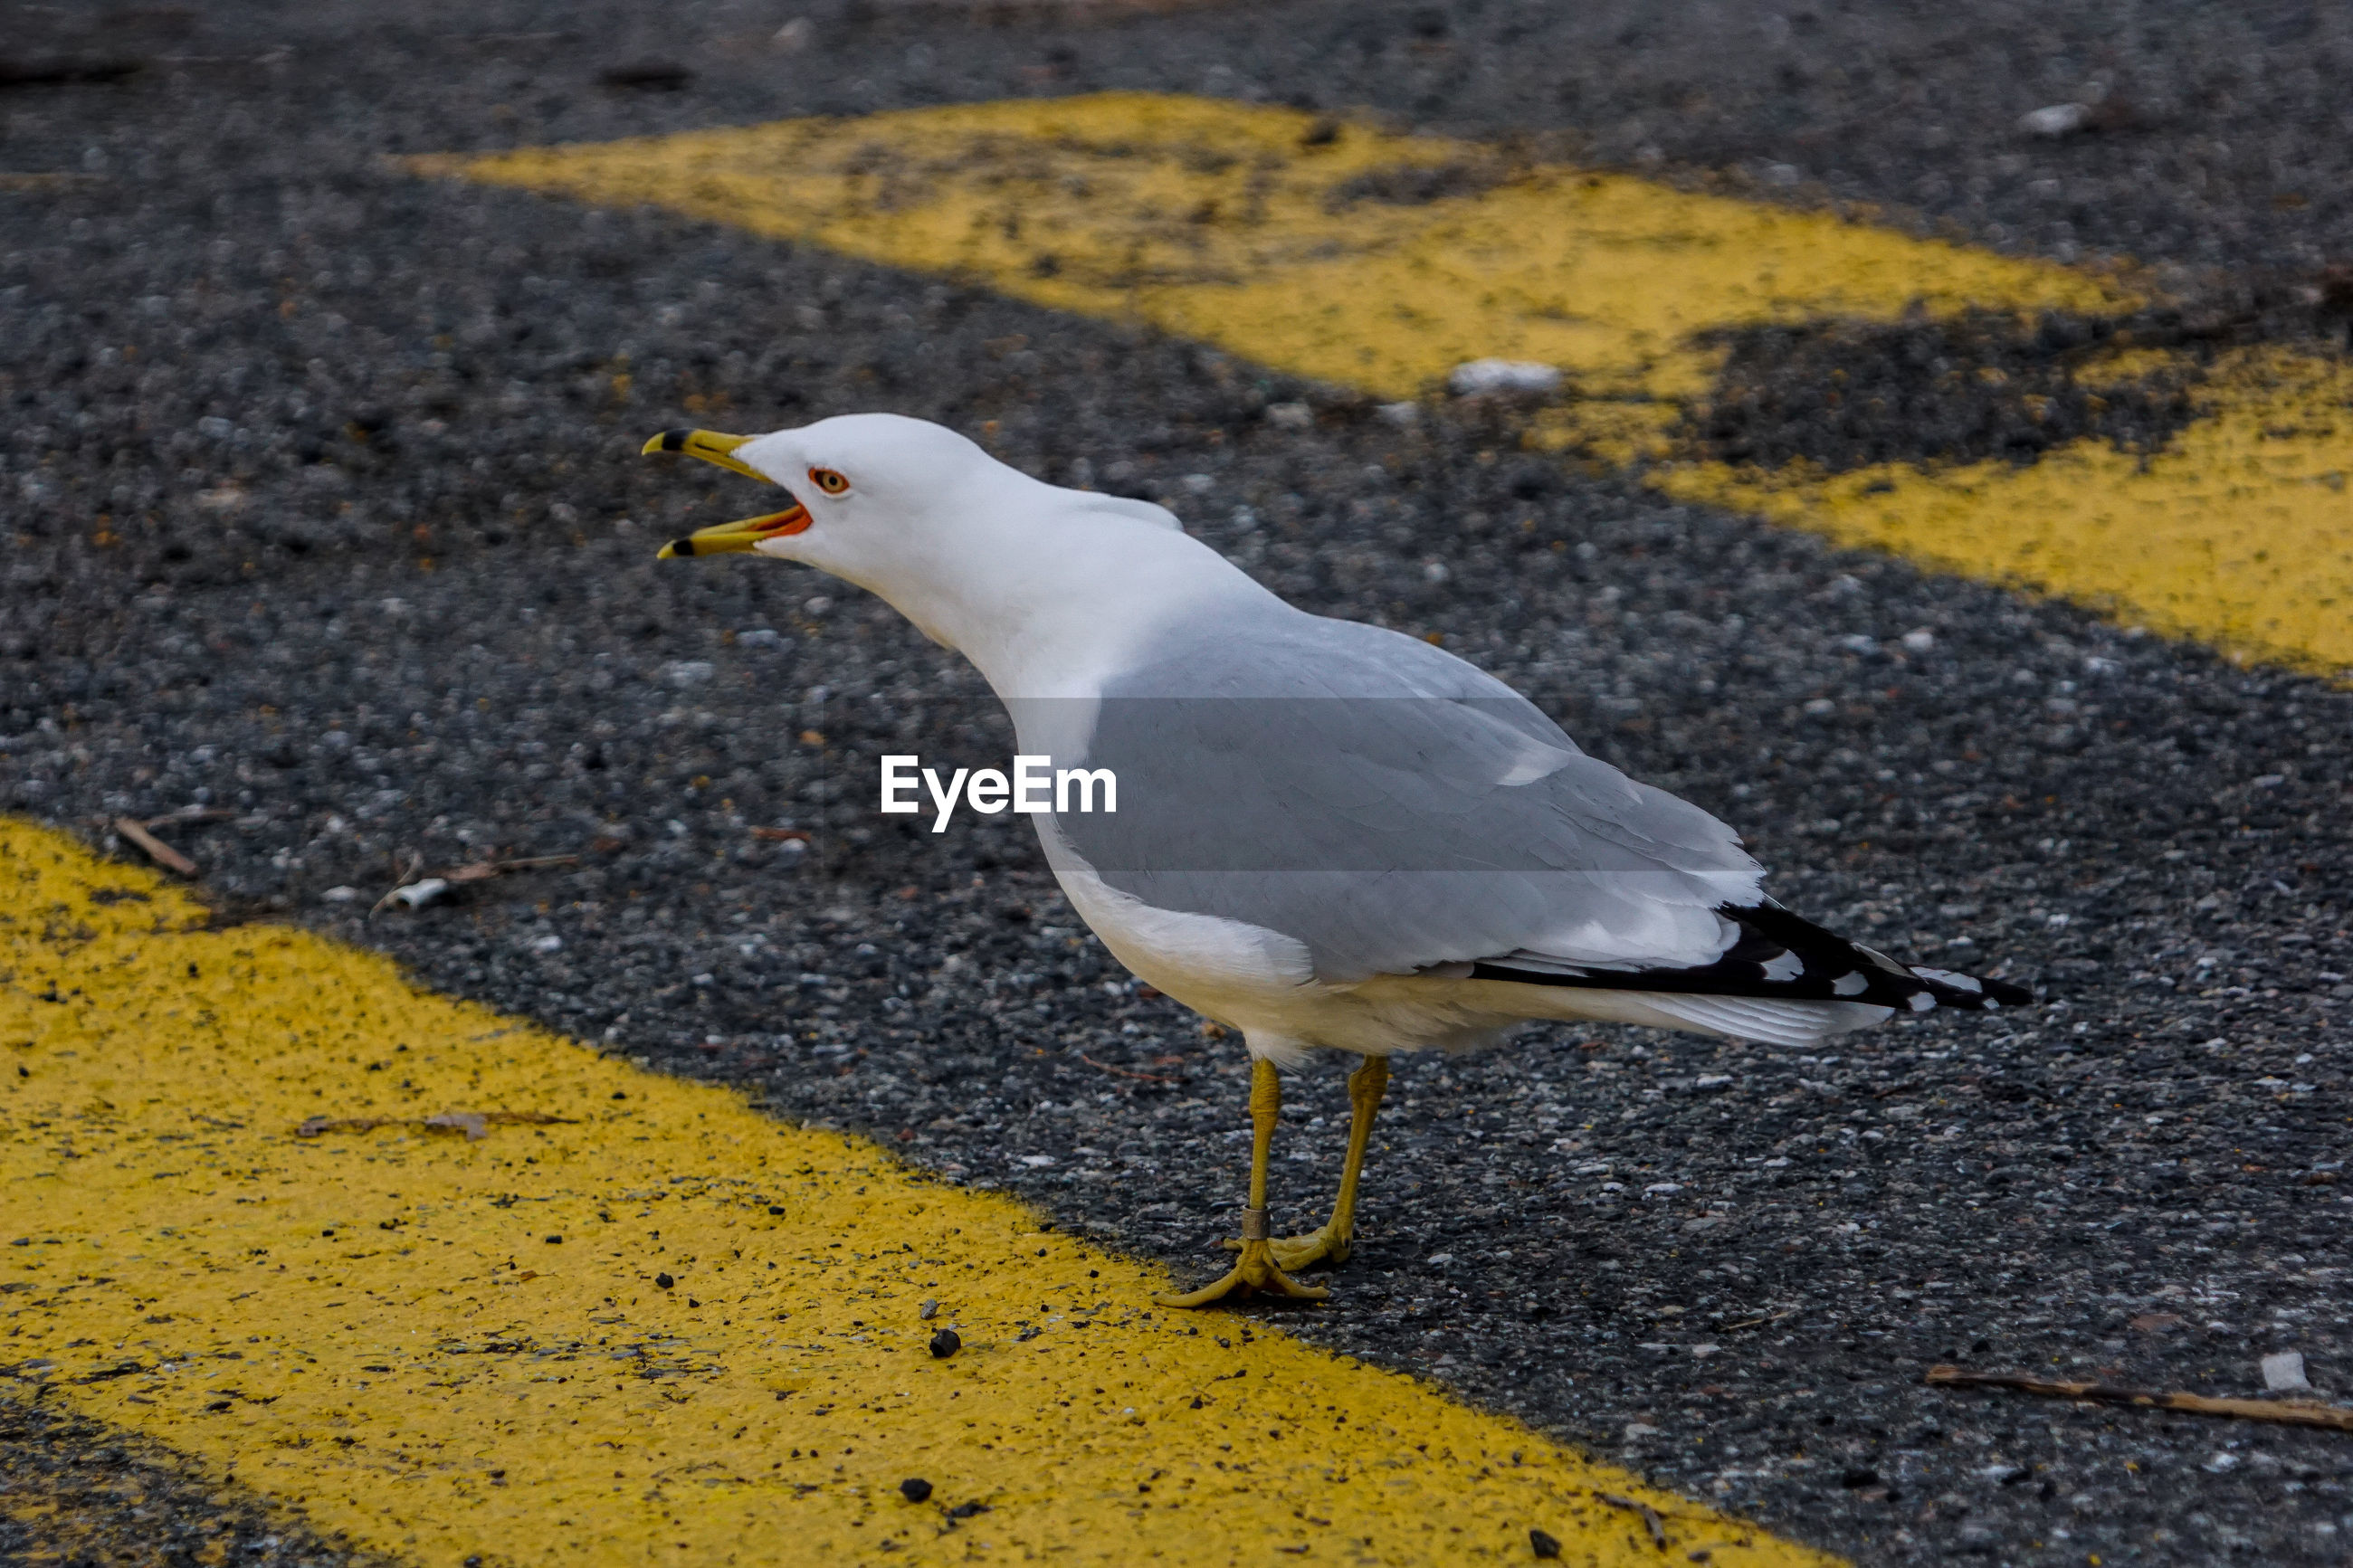 Close-up of seagull perching on road